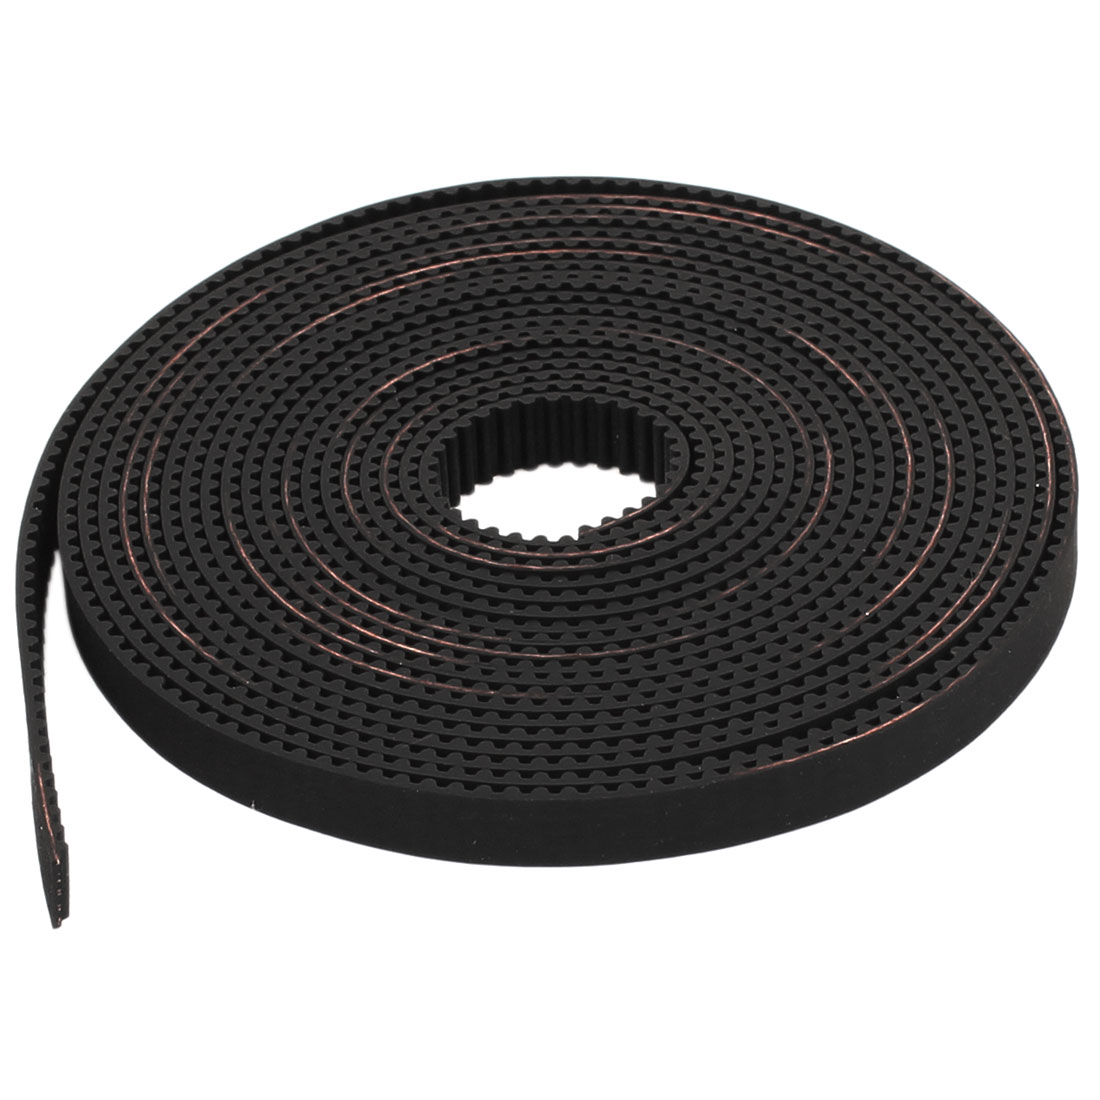 2GT 6mm Wide 2mm Pitch Open Loop Timing Belt 3Meter for 3D Printer